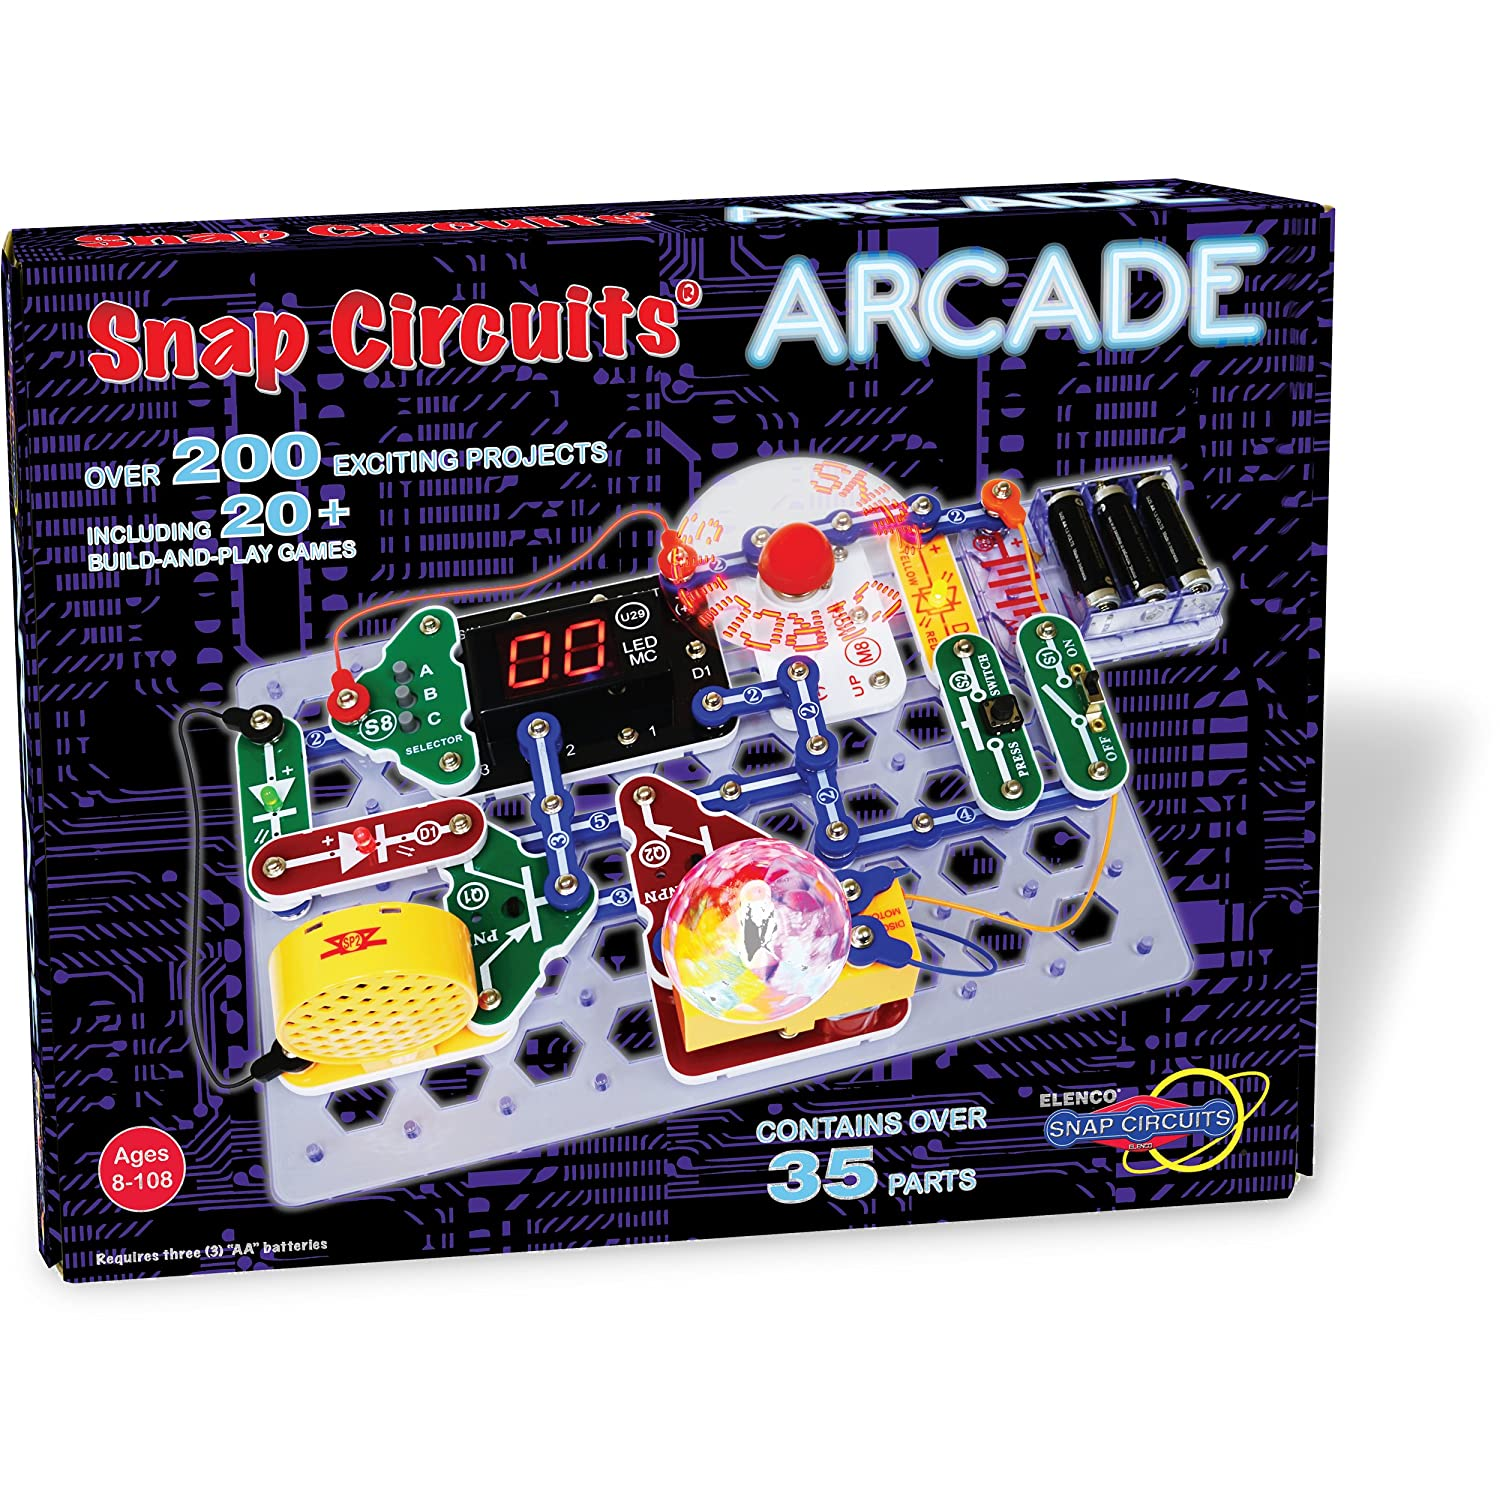 Snap Circuits Arcade Electronics Exploration Kit Over Circuit Construction Simulation Allows Students To Build 200 Stem Projects 4 Color Project Manual 20 And Play Games 35 Modules